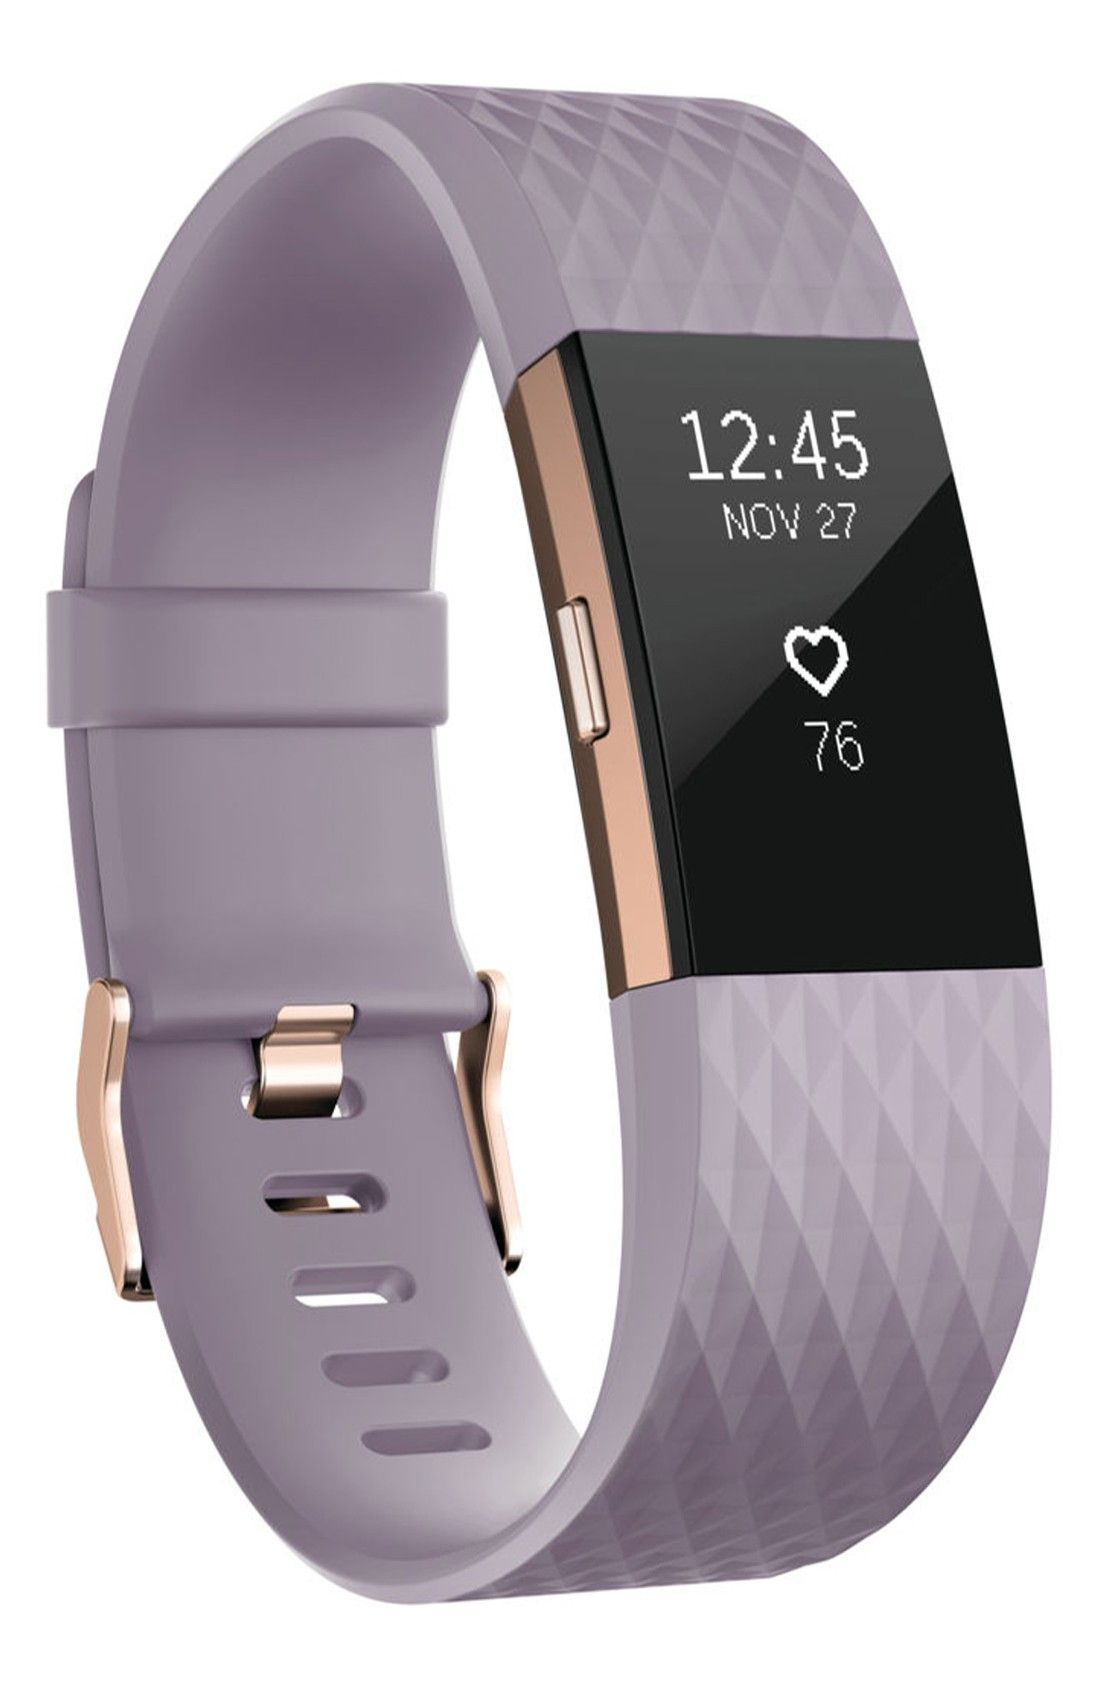 Charge 2 Special Edition Wireless Activity Heart Rate Tracker Fitness Wristband Fitbit Charge Fitbit Watch